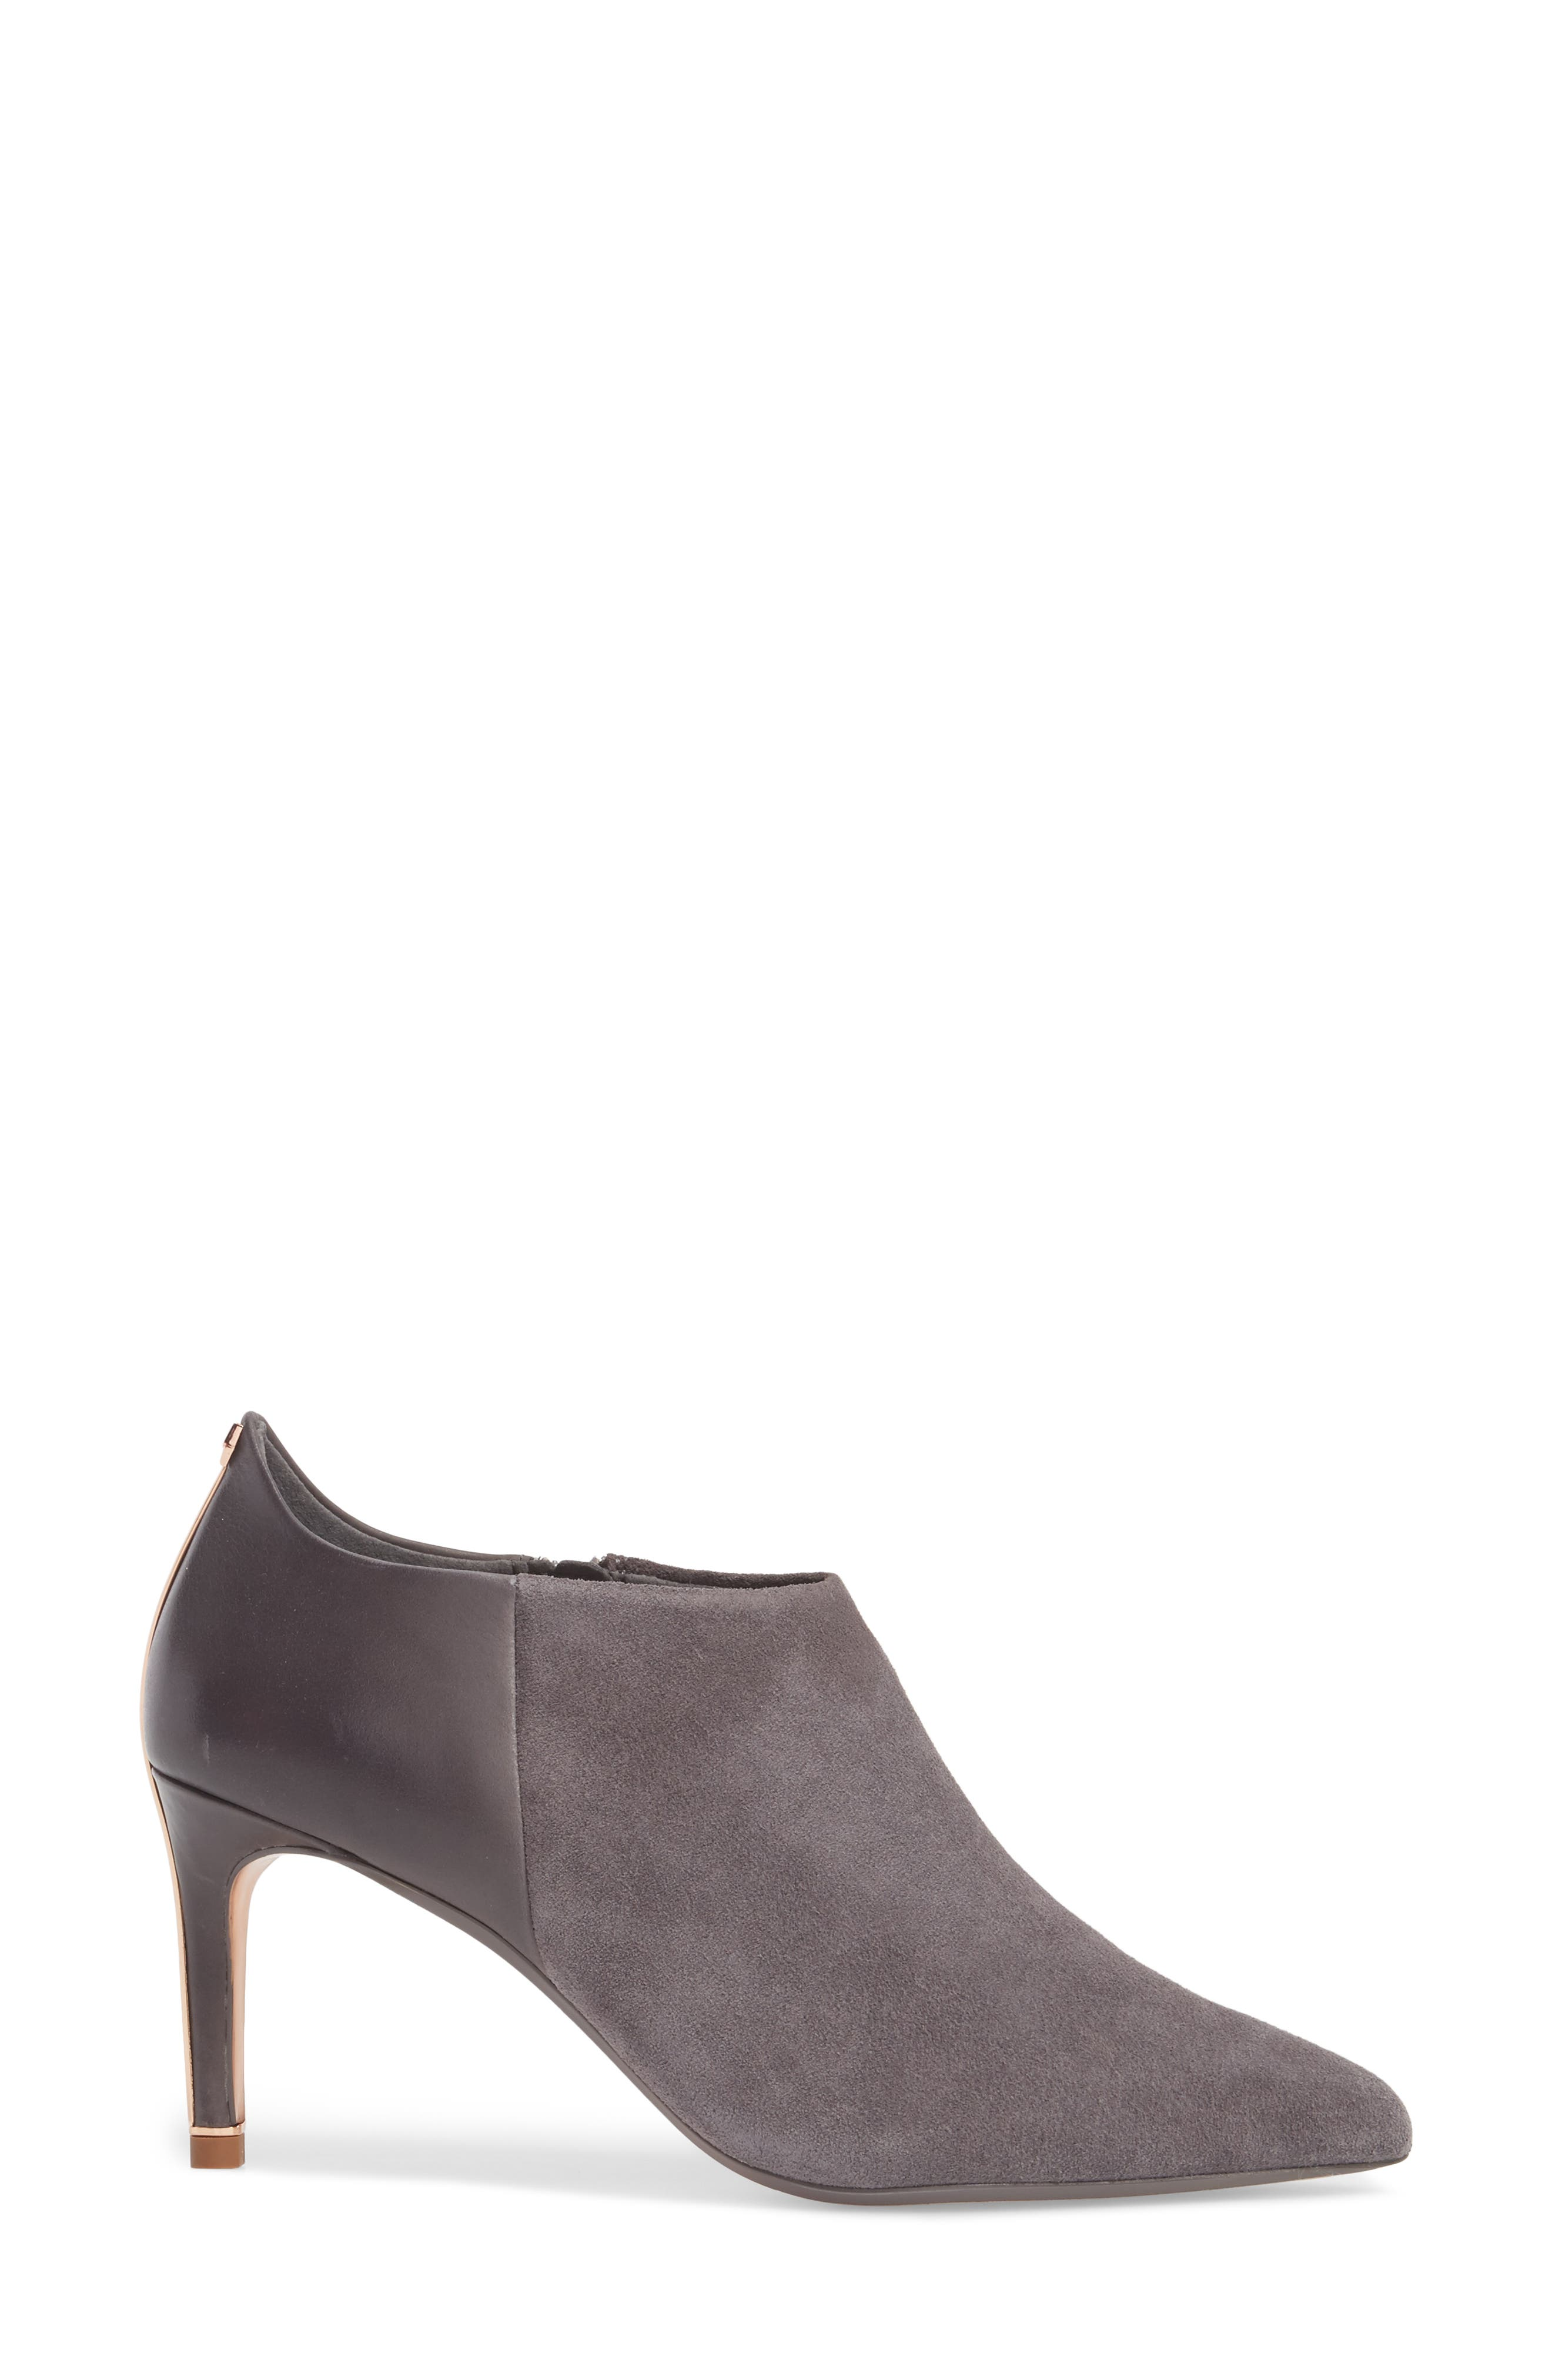 Akasher Bootie,                             Alternate thumbnail 3, color,                             Grey Suede